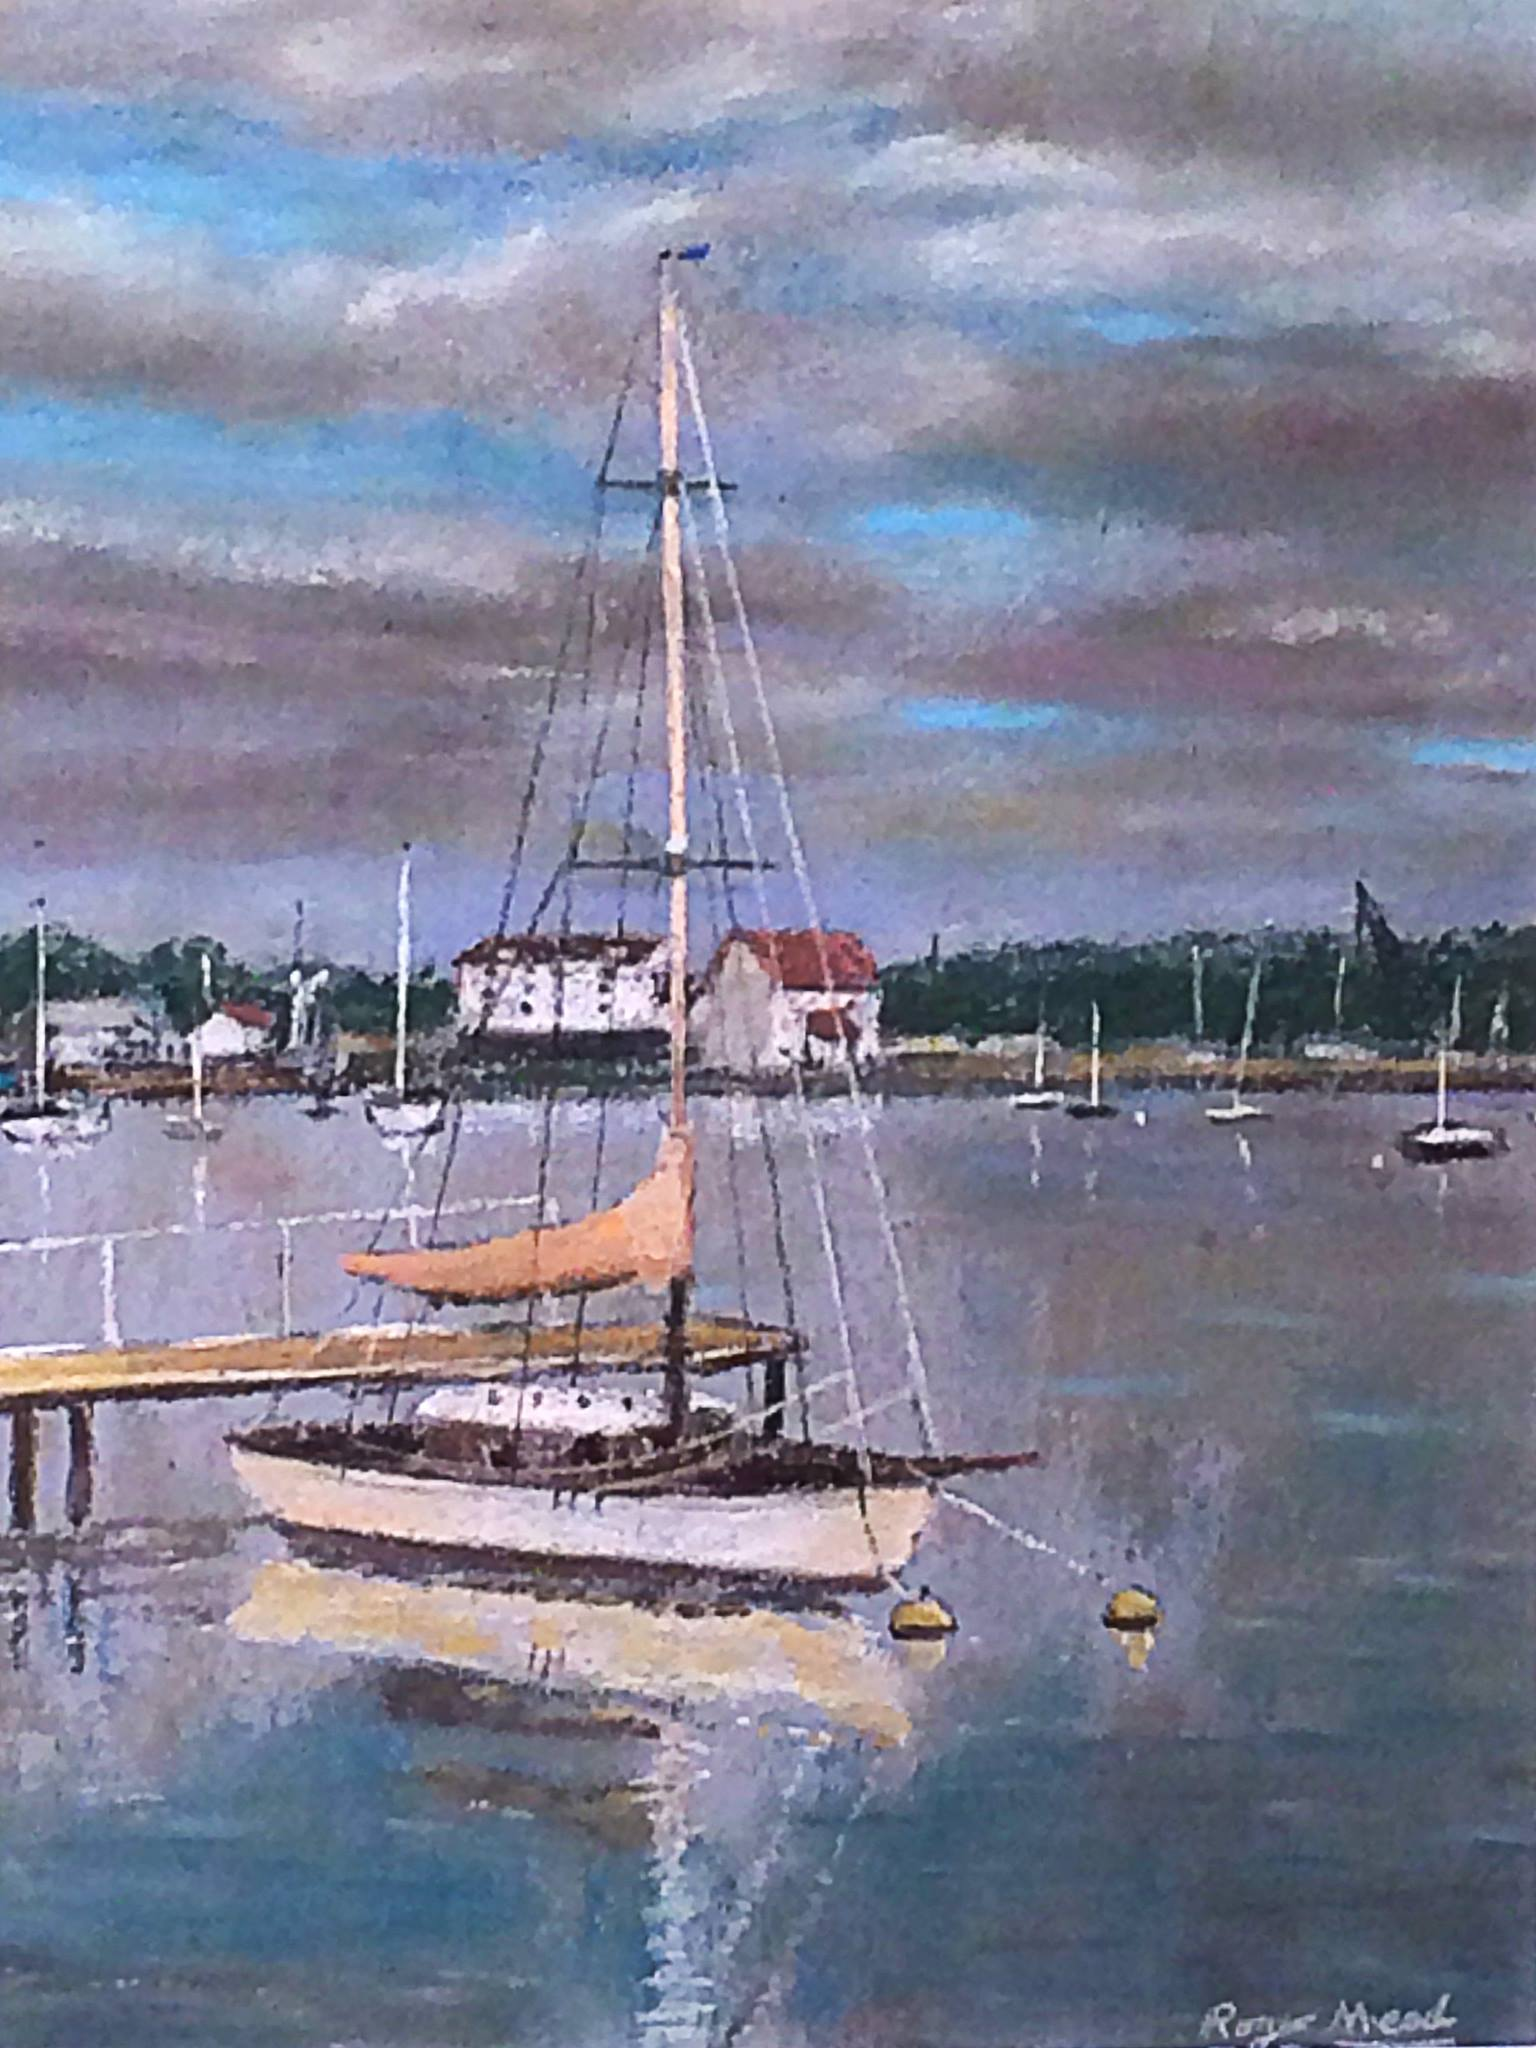 Woodbridge reflections, Pastel by Roger Mead.